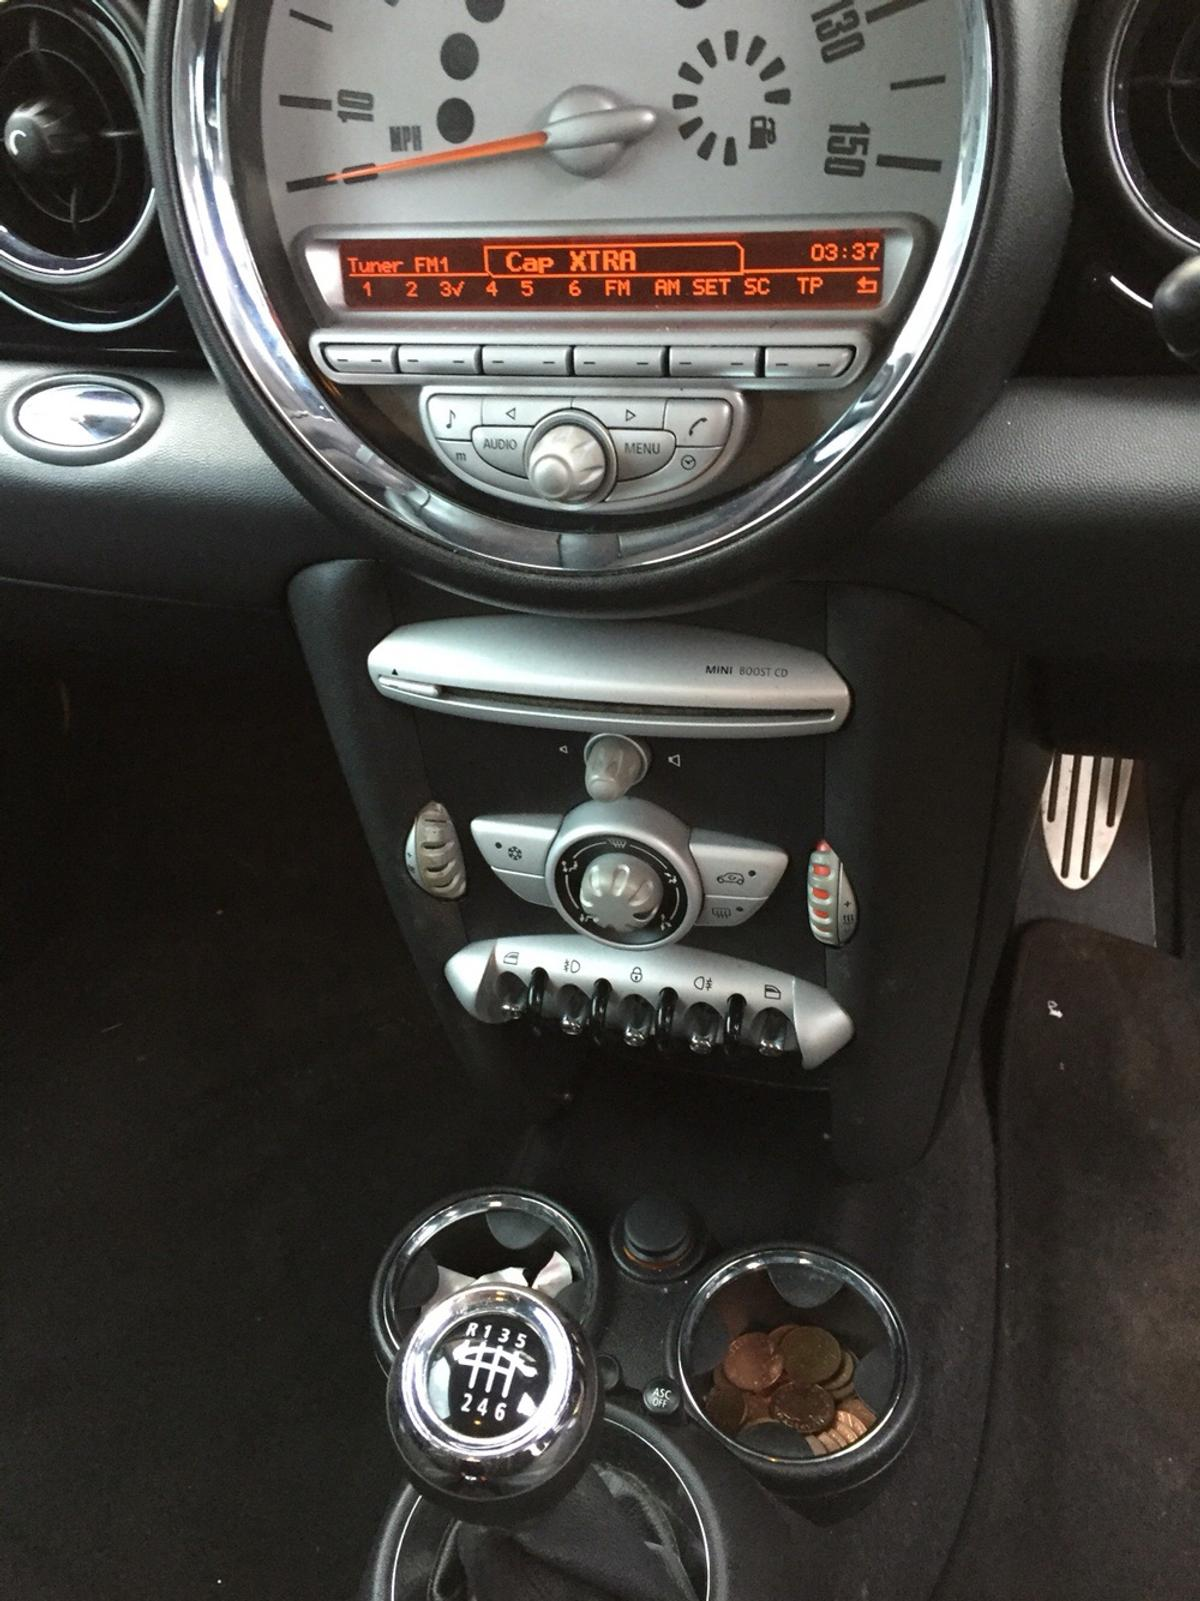 Mini Cooper s Quick sale in TW16 London for £3,900 00 for sale - Shpock